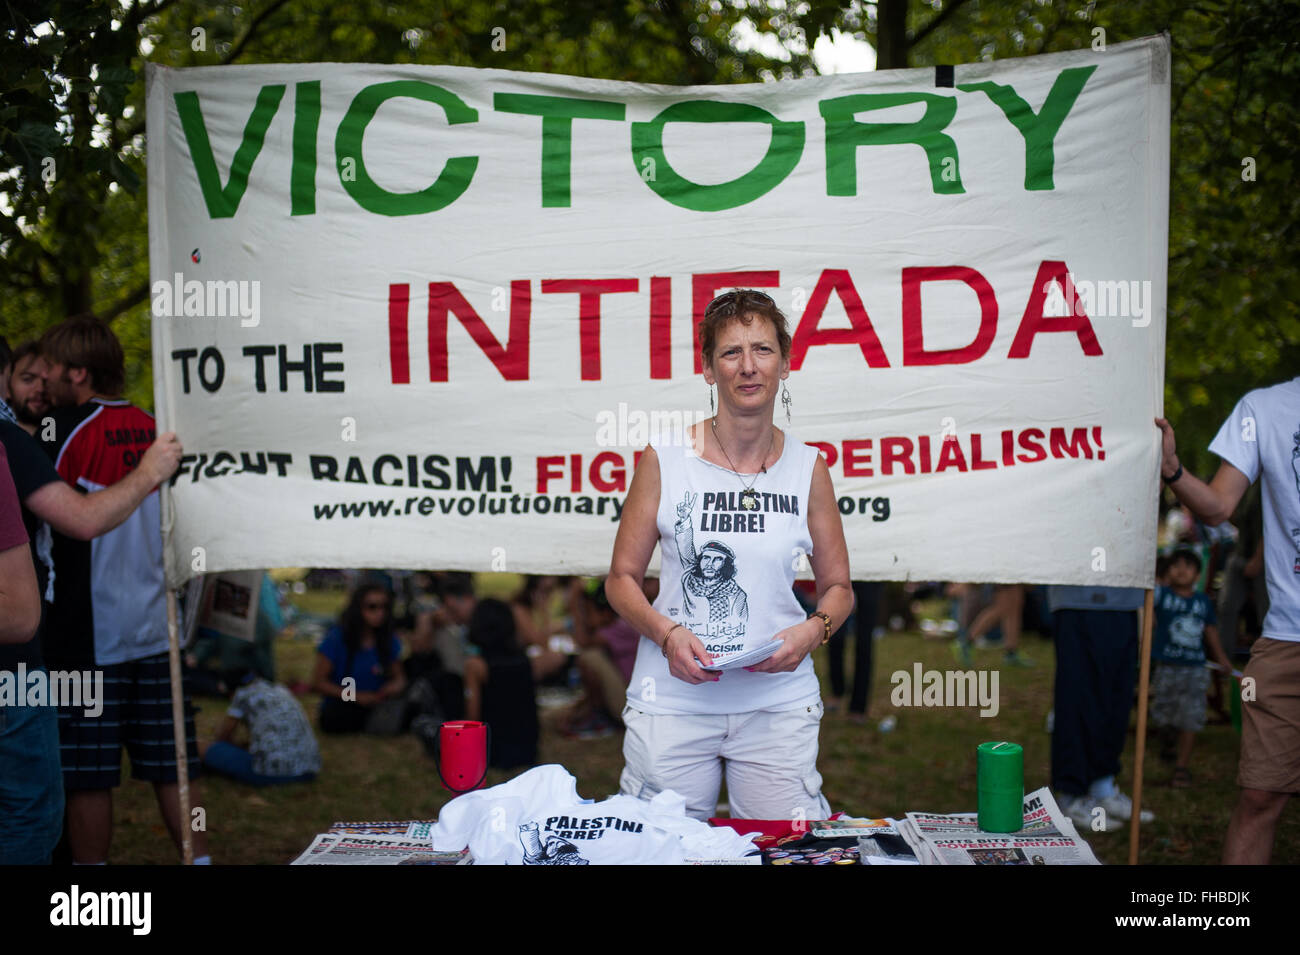 Pro-Palestinian activist, rally for Gaza, London, Aug 9, 2014 - Stock Image